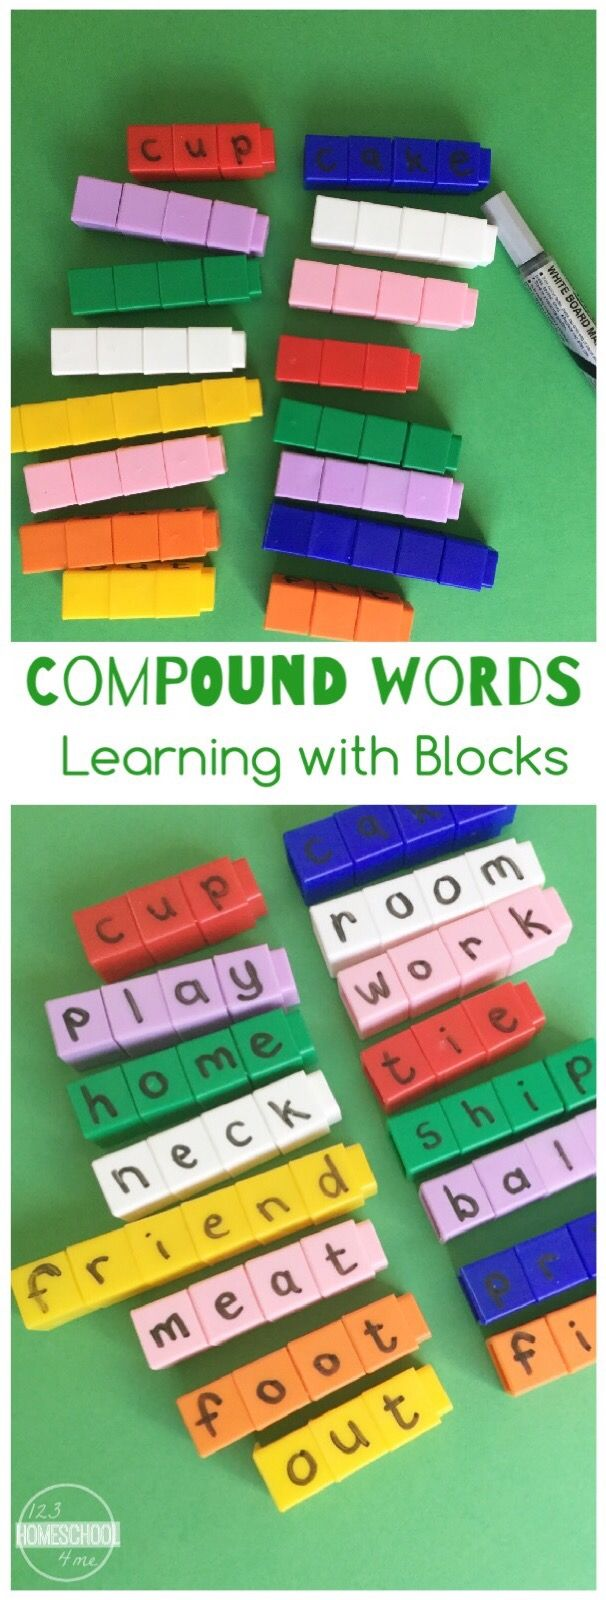 Compounds Words Activity- this is such a fun learning activity for prek, kindergarten, first grade, second grade, and 3rd grade kids to understand and practice compound words with a fun hand on learning activity perfect for literacy centers, homeschooling, summer learning, and more!